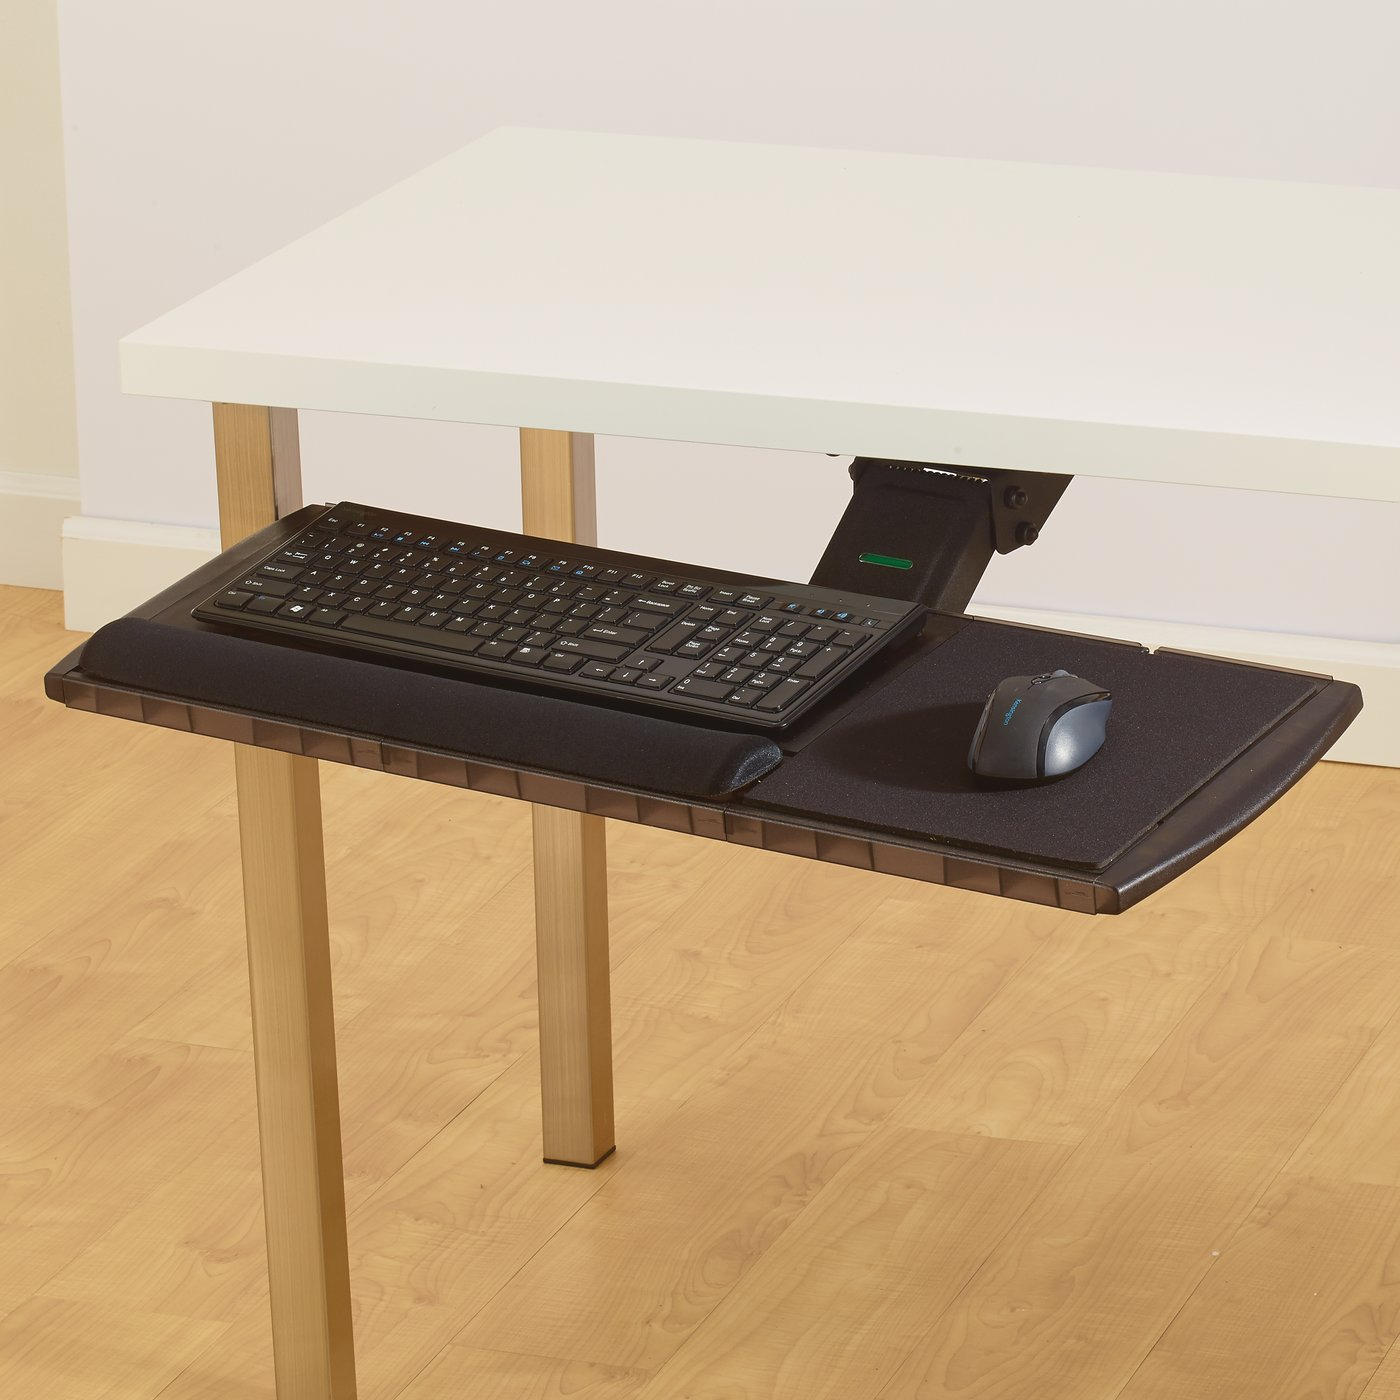 Kensington Products Ergonomics Laptop Risers & Monitor